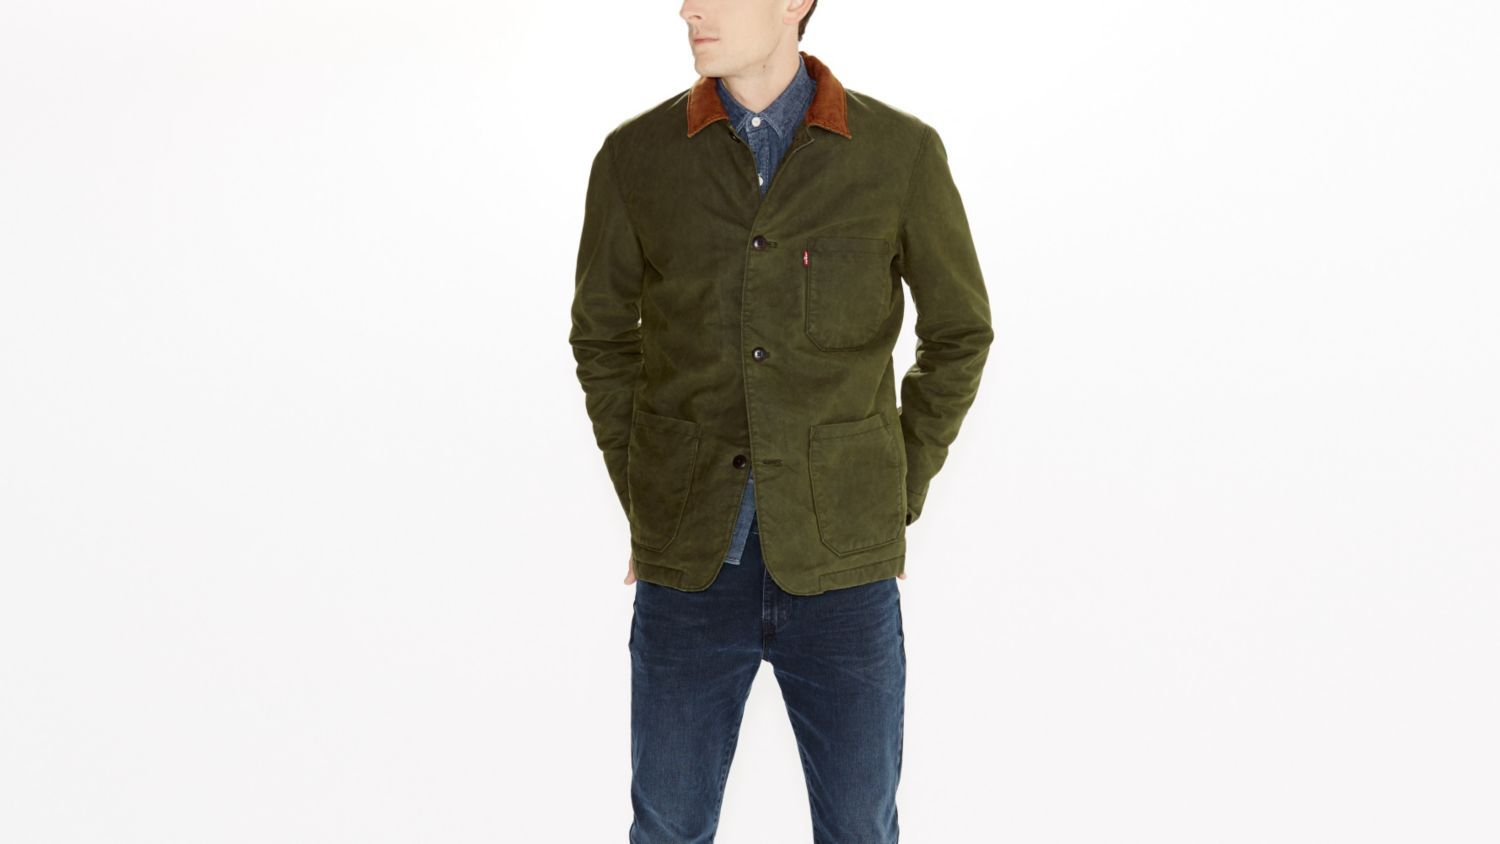 344a04862 Levi's Engineer's Coat | Manly Jackets | Jackets, Work jackets, Clothes